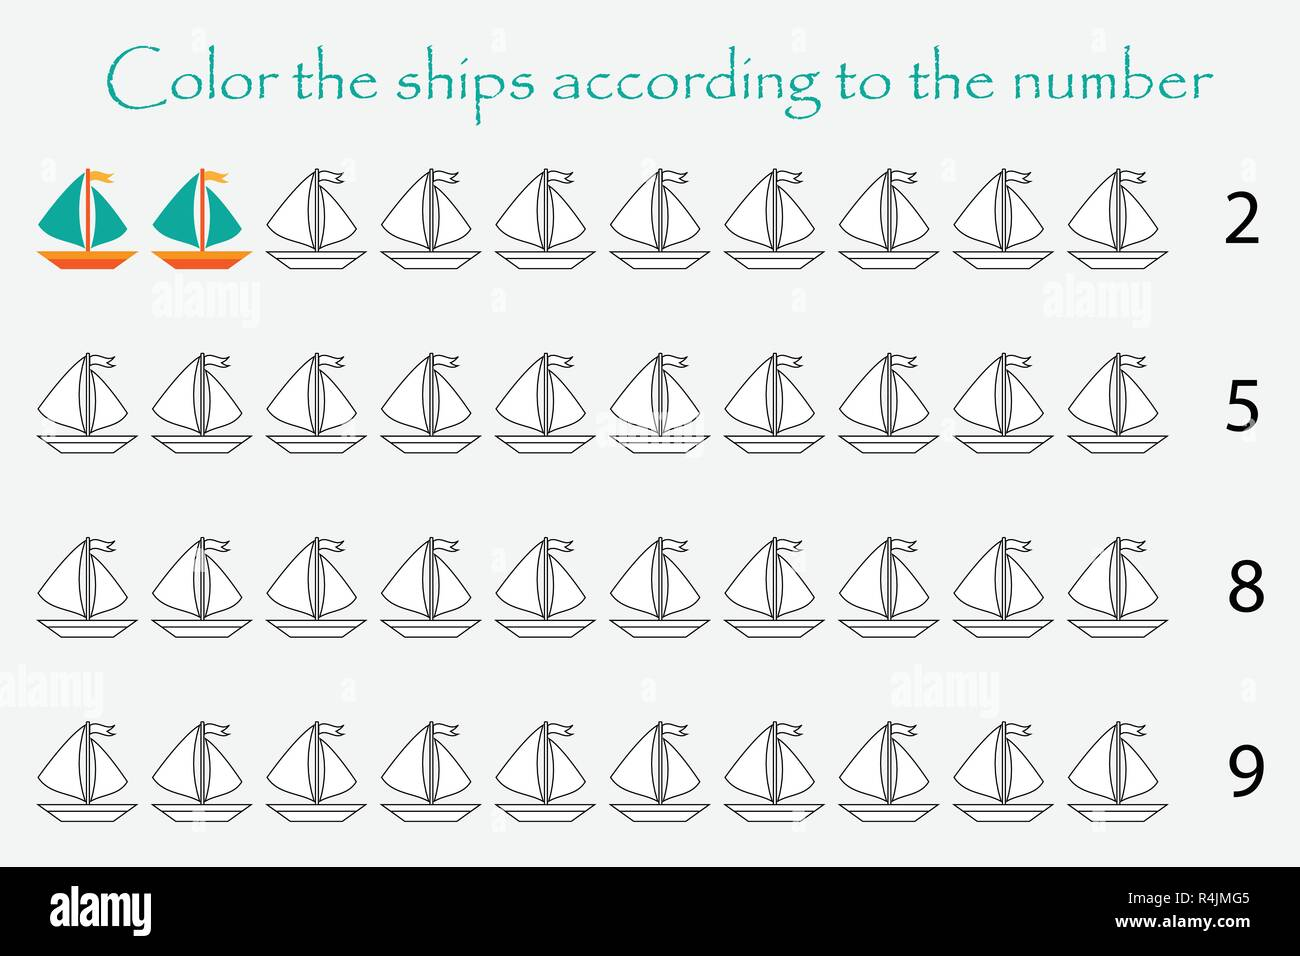 Maths Activity Coloring Stock Photos Amp Maths Activity Coloring Stock Images